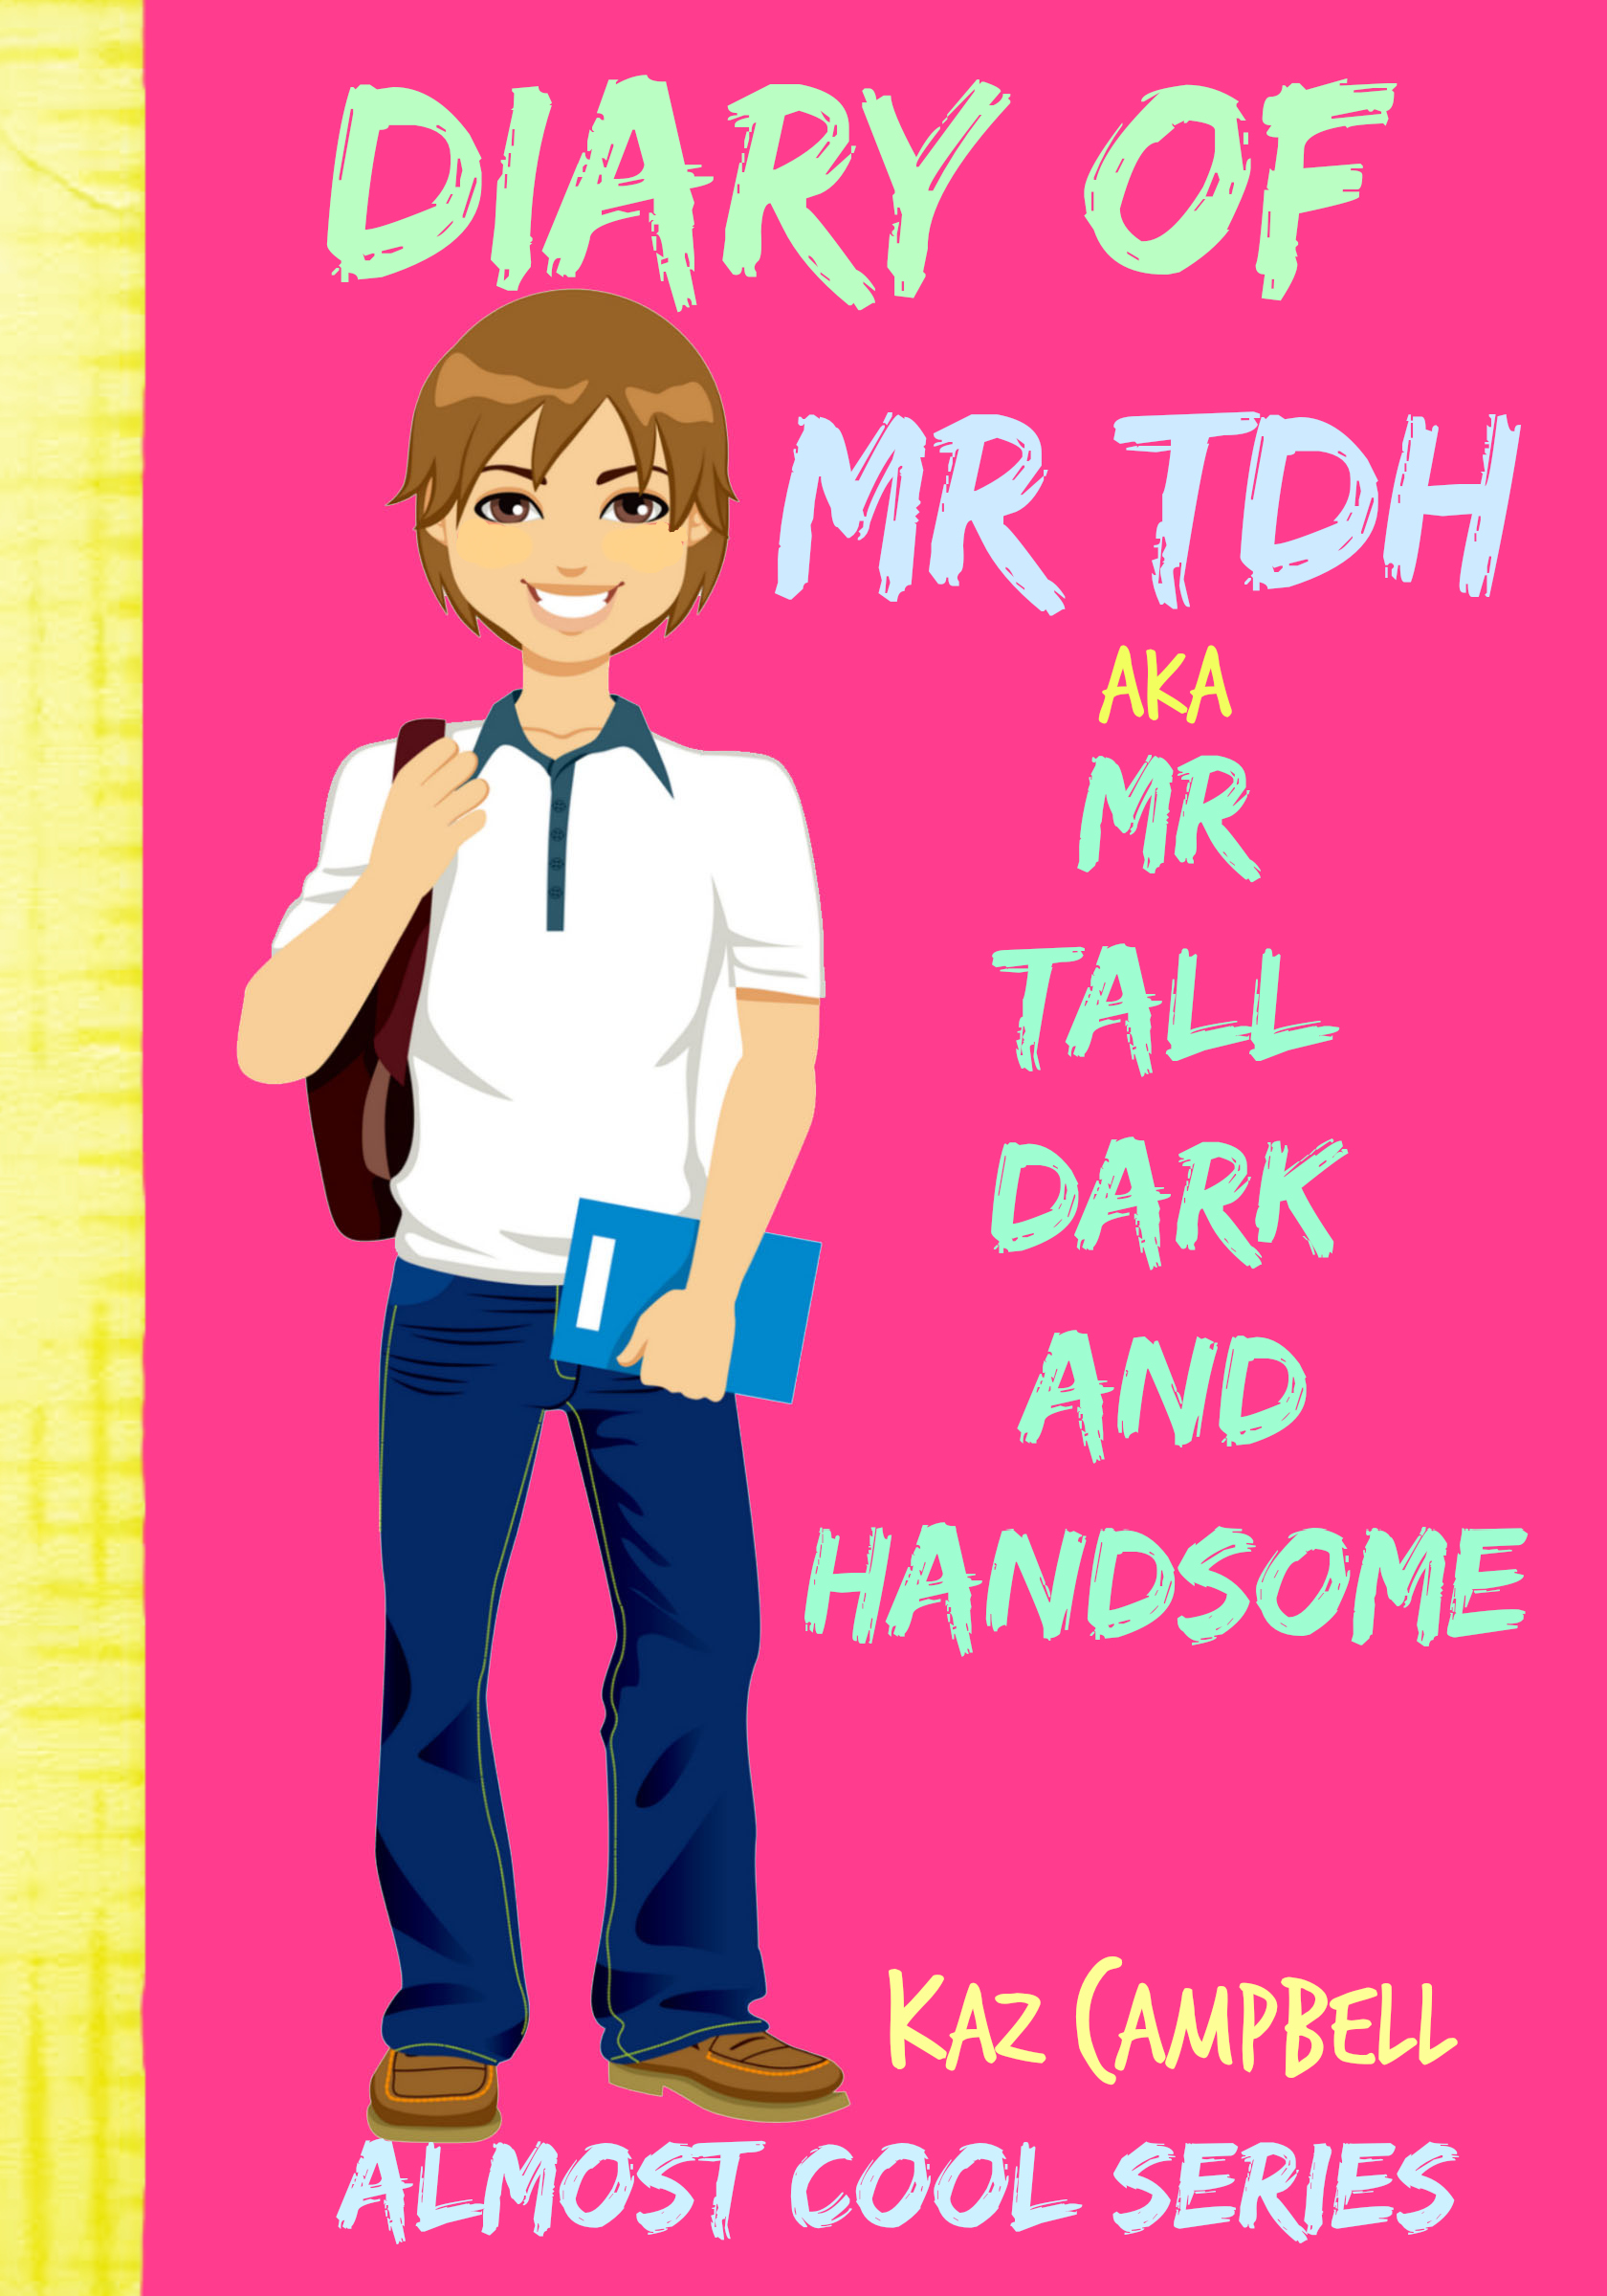 Diary of mr tall, dark and handsome - my life has changed! a book for girls aged 9 - 12